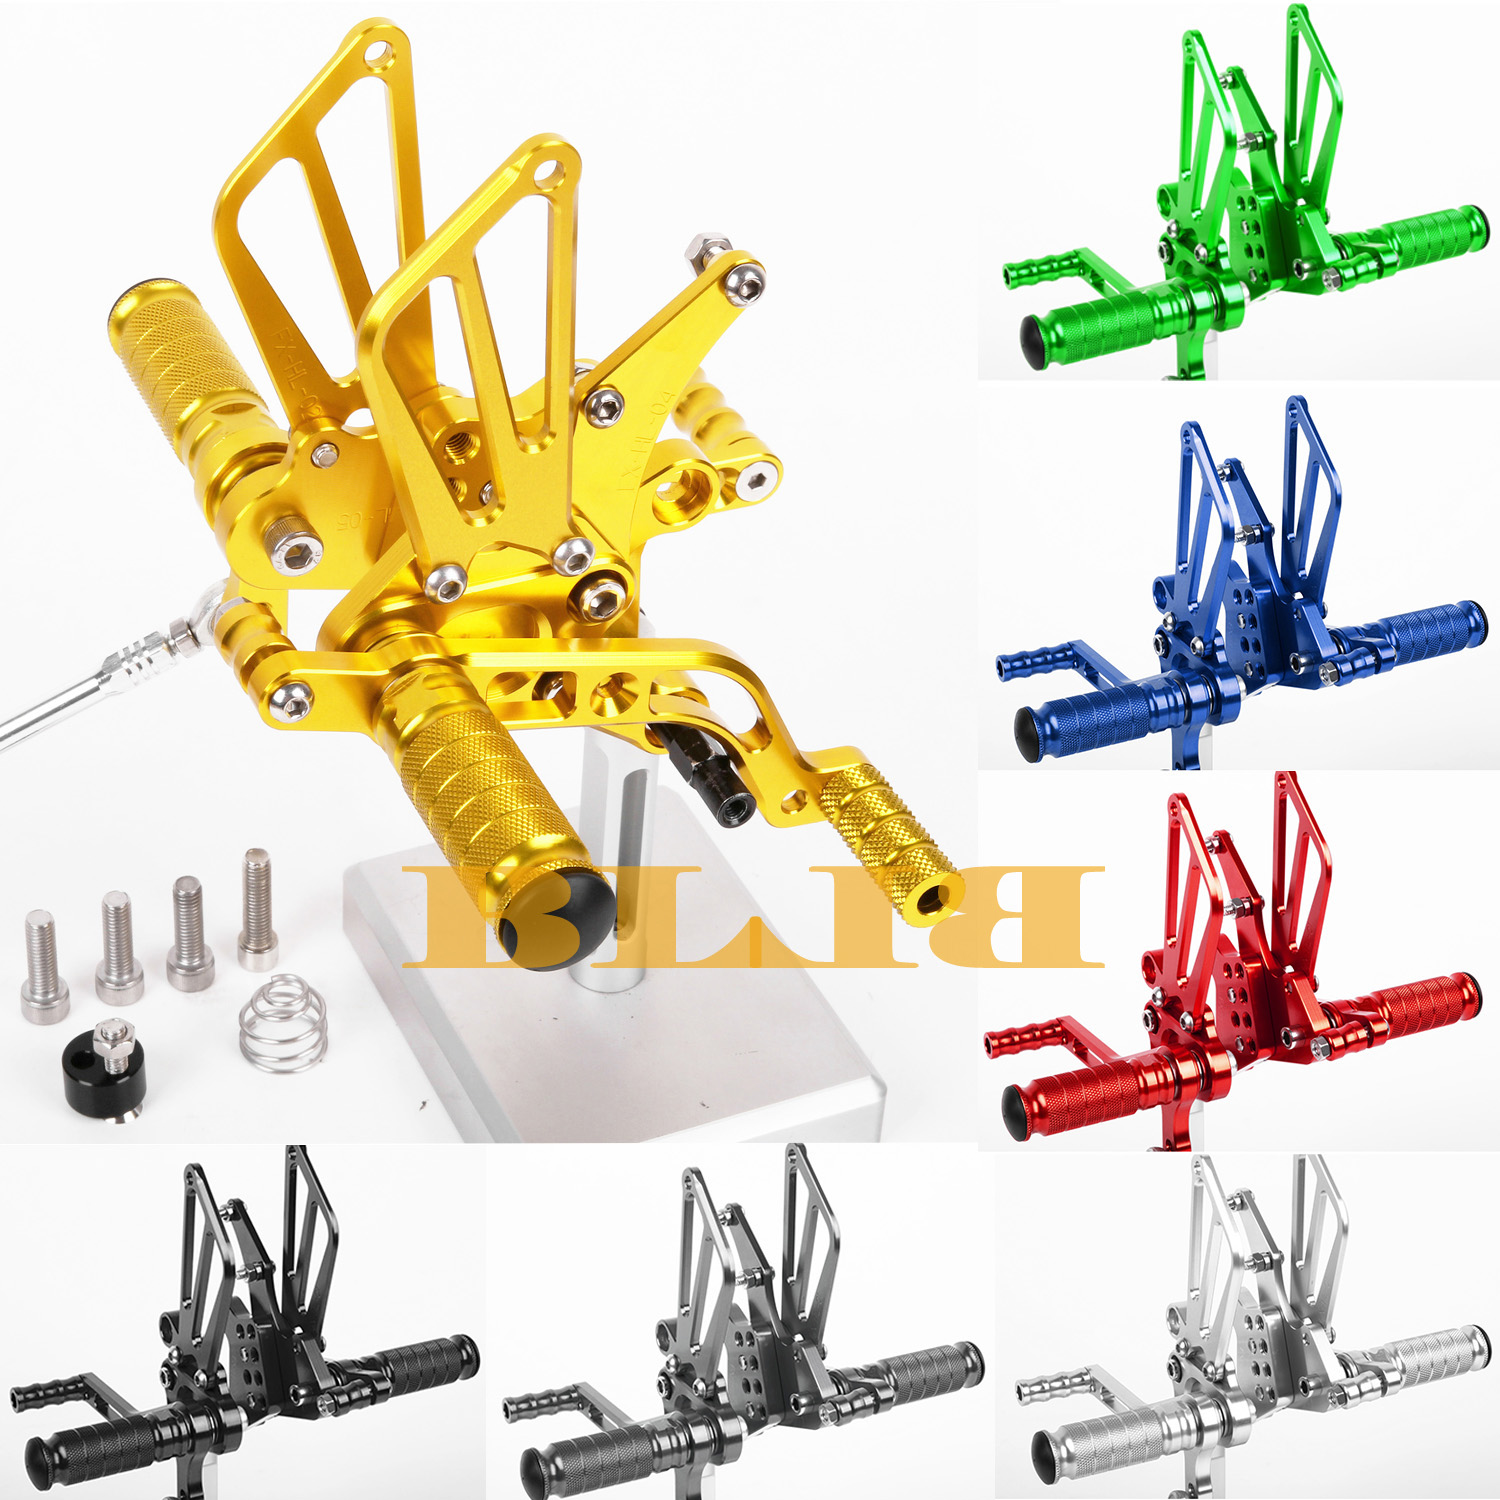 8 Colors For Benelli BN600 2013 Motorcycle Footrests CNC Adjustable Foot Pegs Rearsets Rear Set Hot Sale Motorbike Footpegs